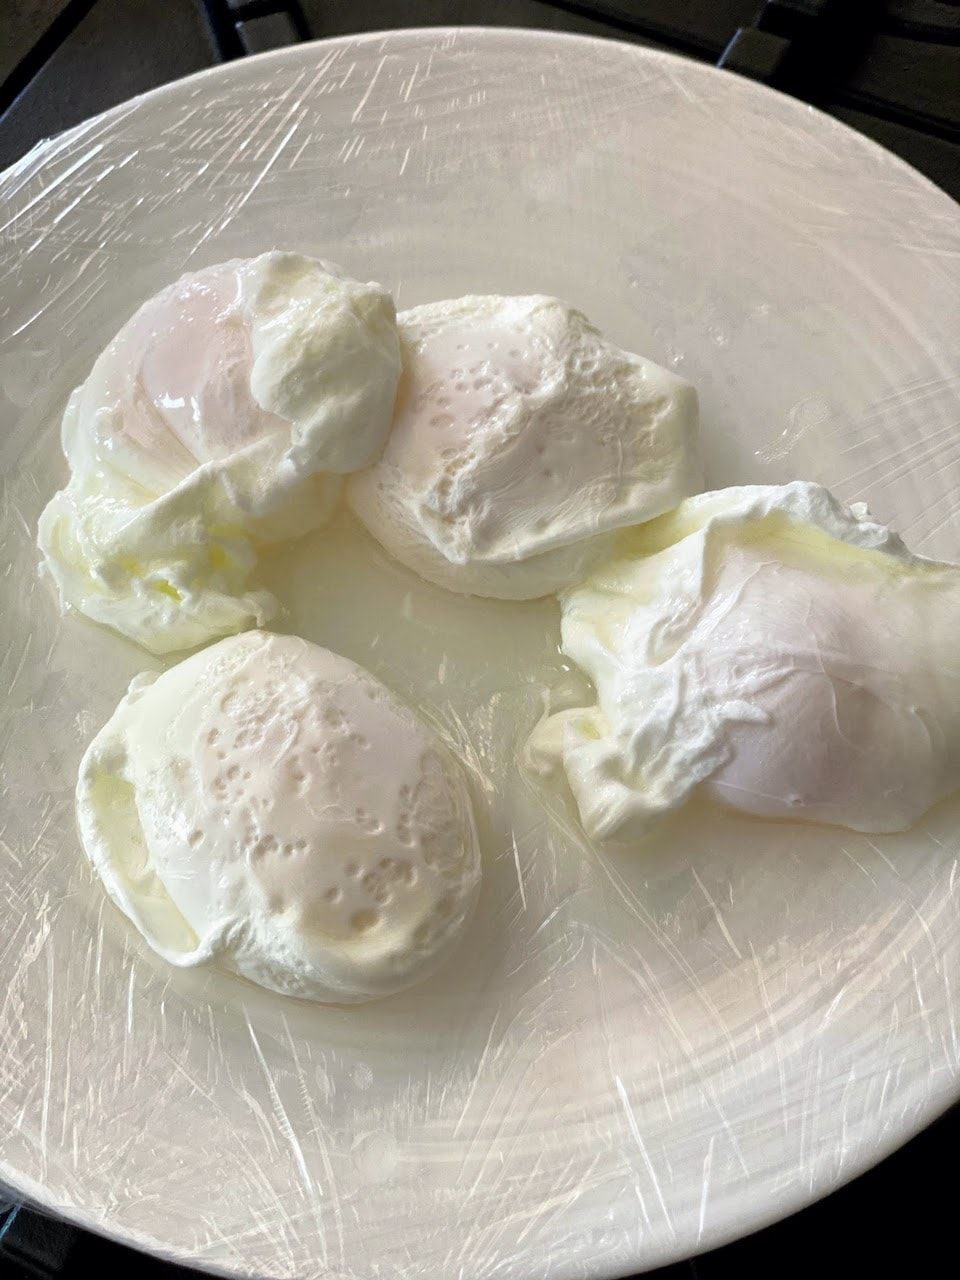 four poached eggs sitting on plastic-wrapped plate